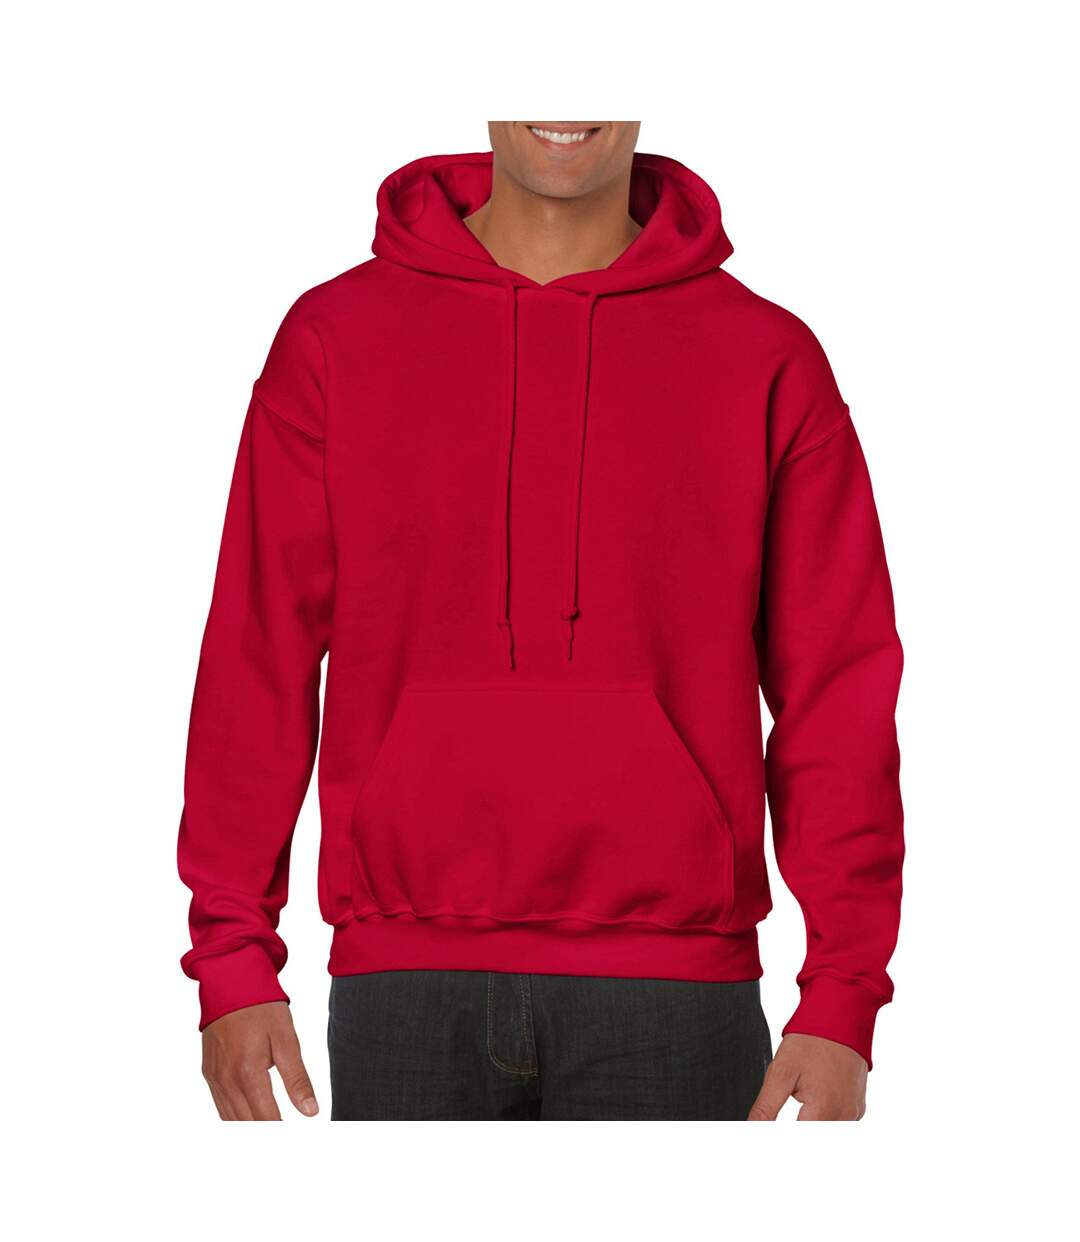 Gildan Heavy Blend Adult Unisex Hooded Sweatshirt / Hoodie (Cherry Red) - UTBC468